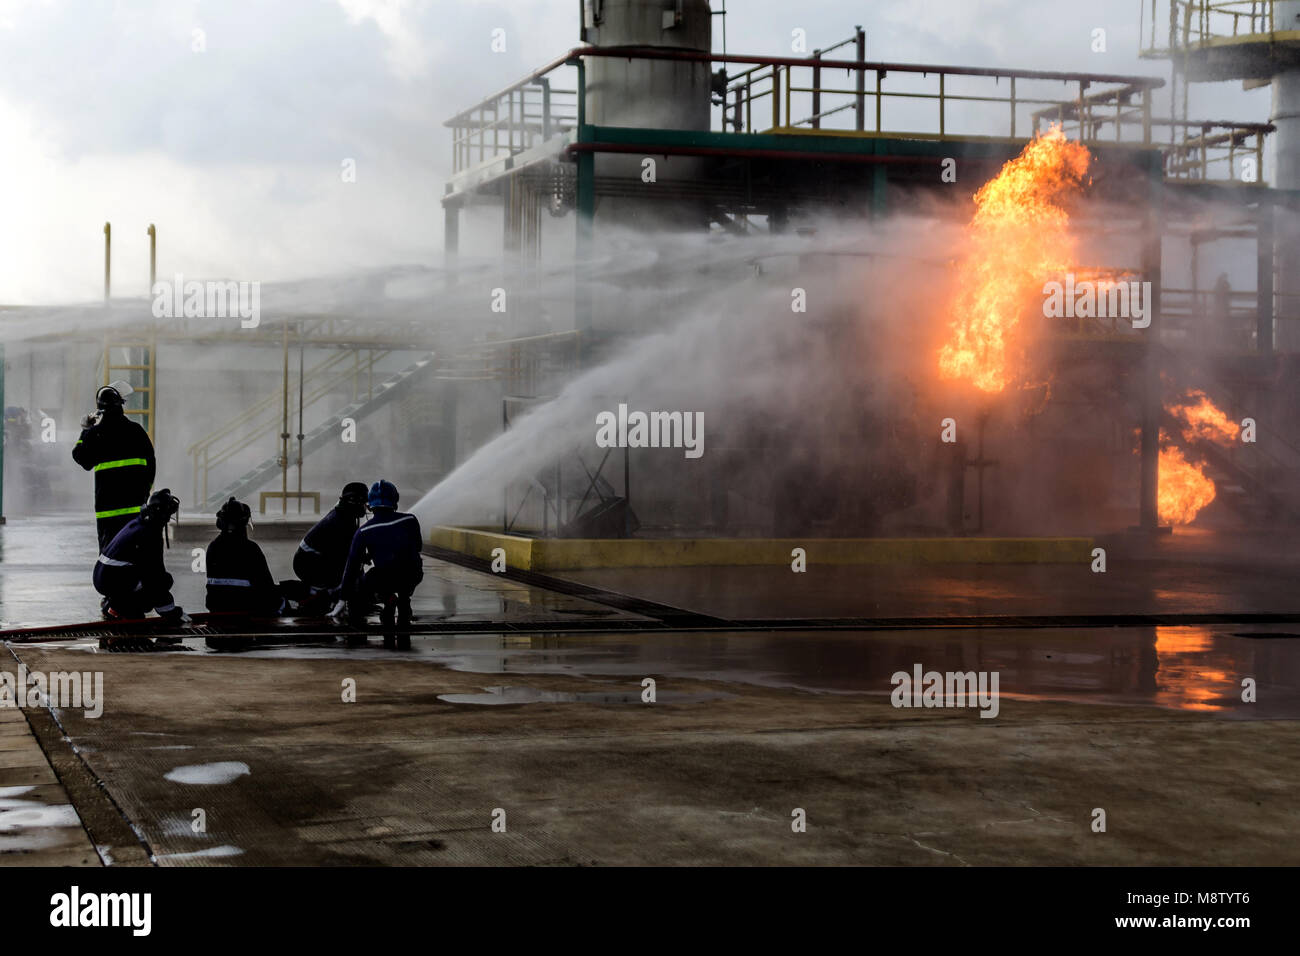 Firemen using water from hose for fire fighting at firefight training of insurance group. Firefighter wearing a - Stock Image